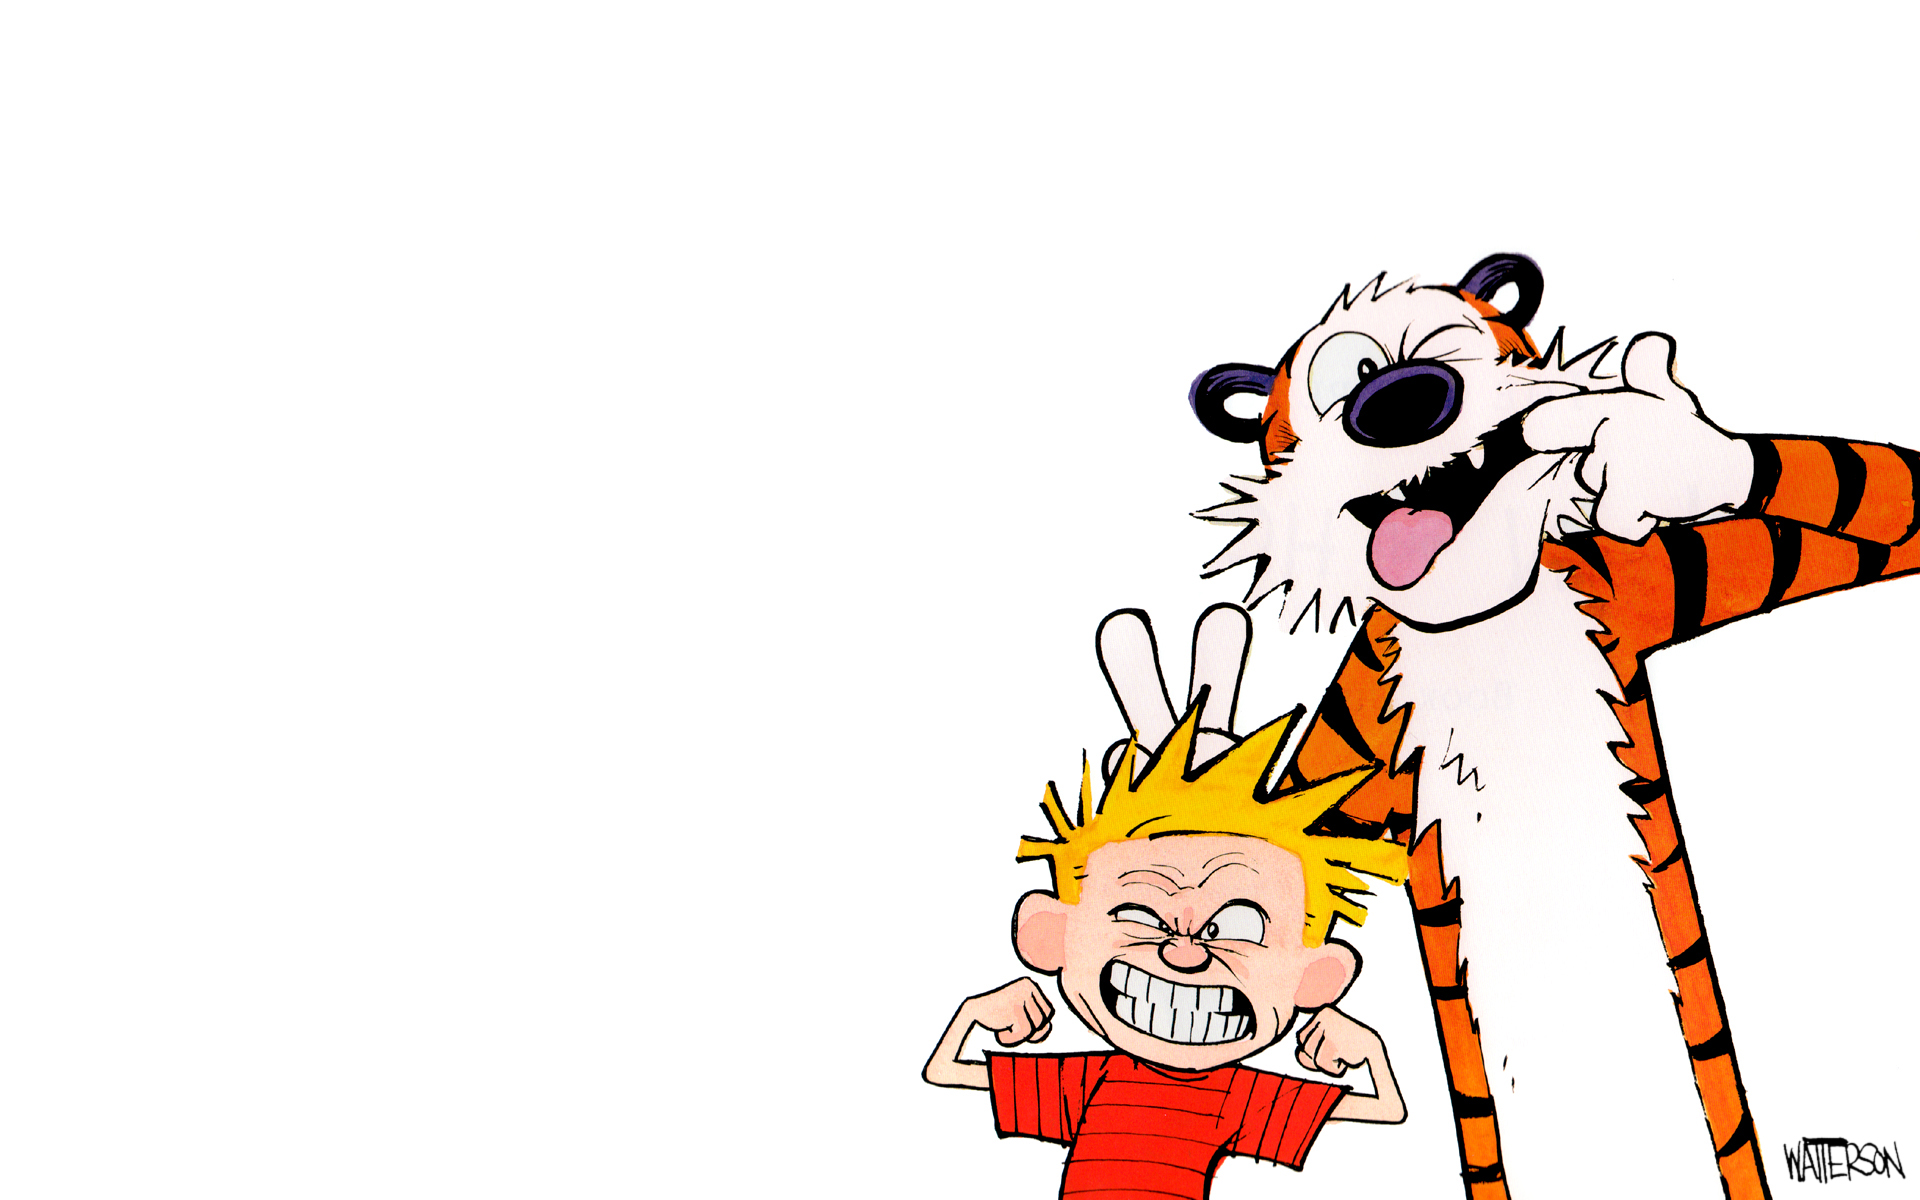 Calvin & Hobbes Backgrounds, Compatible - PC, Mobile, Gadgets| 1920x1200 px